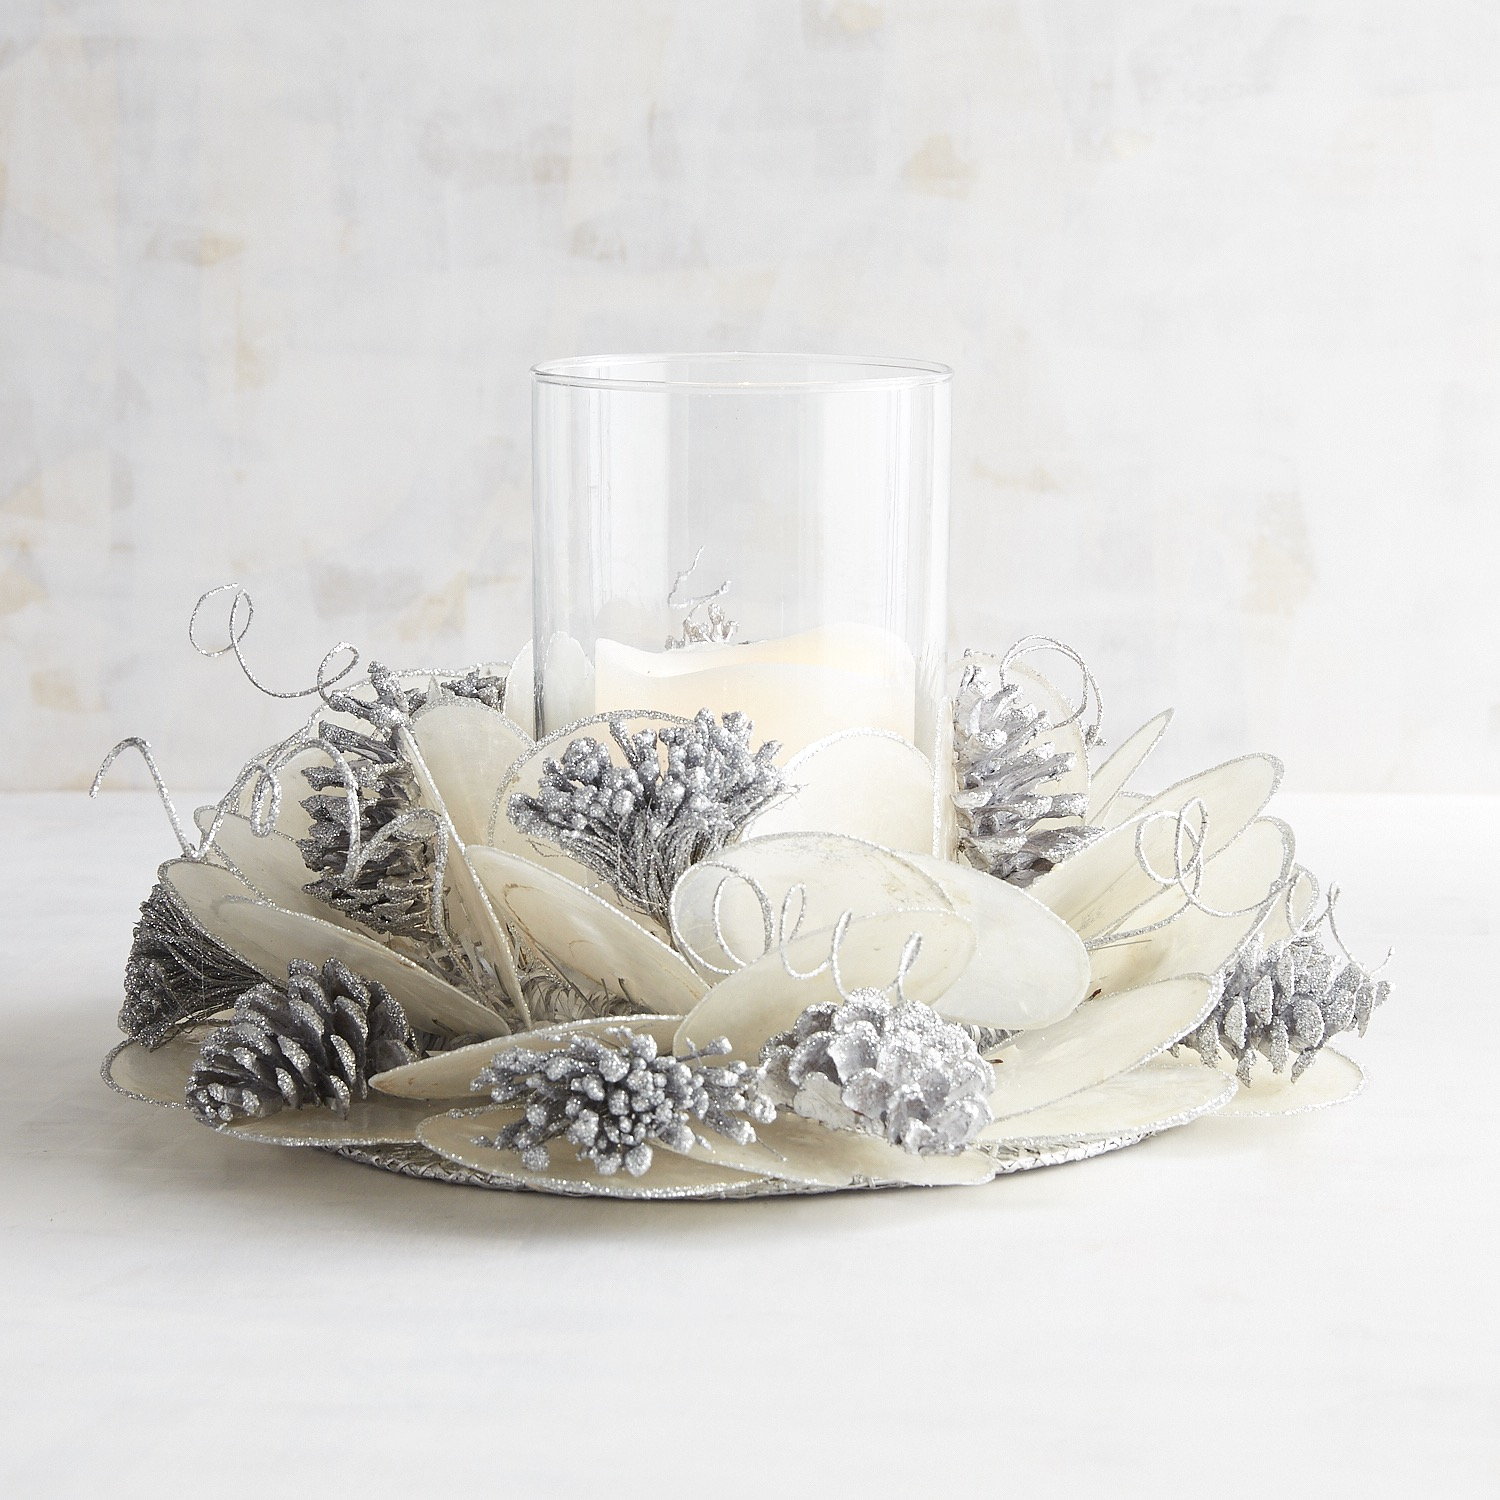 Silver & White Capiz Hurricane Candle Holder